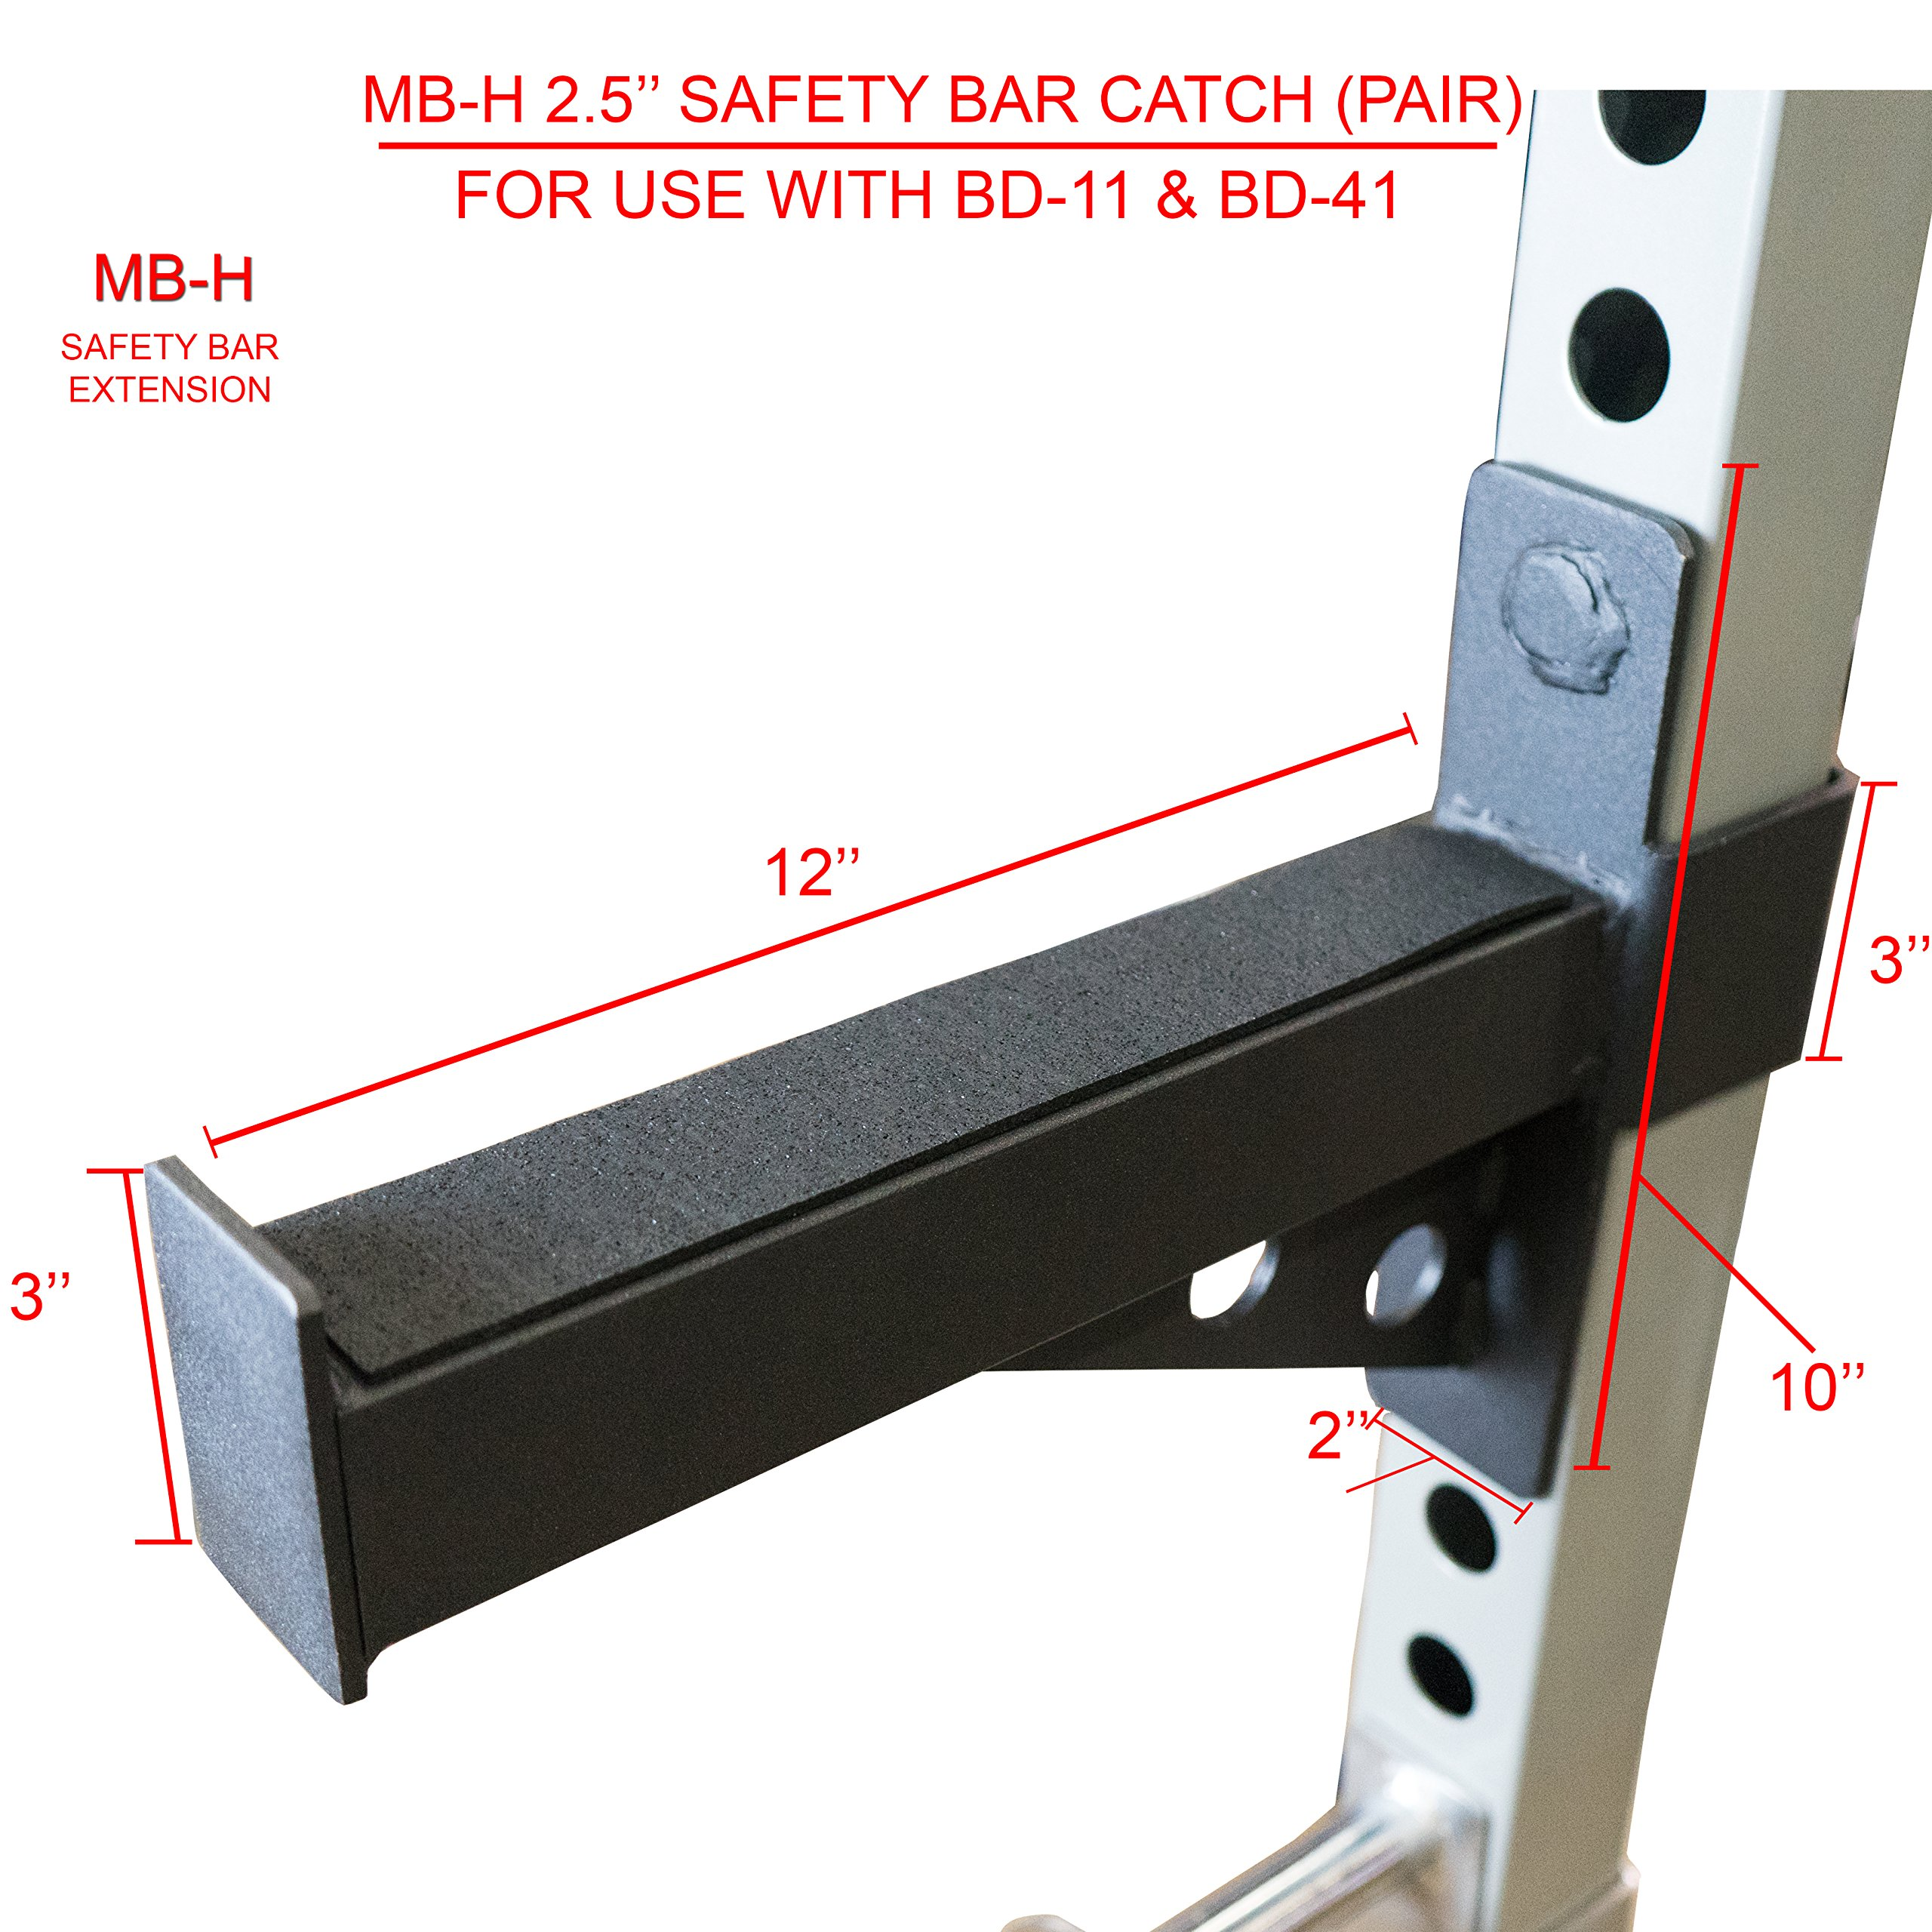 Valor Fitness MB-H Safety Bar Extension Accessory Set for BD-11, BD-20 and BD-41 (fits 2.5'' tubing)